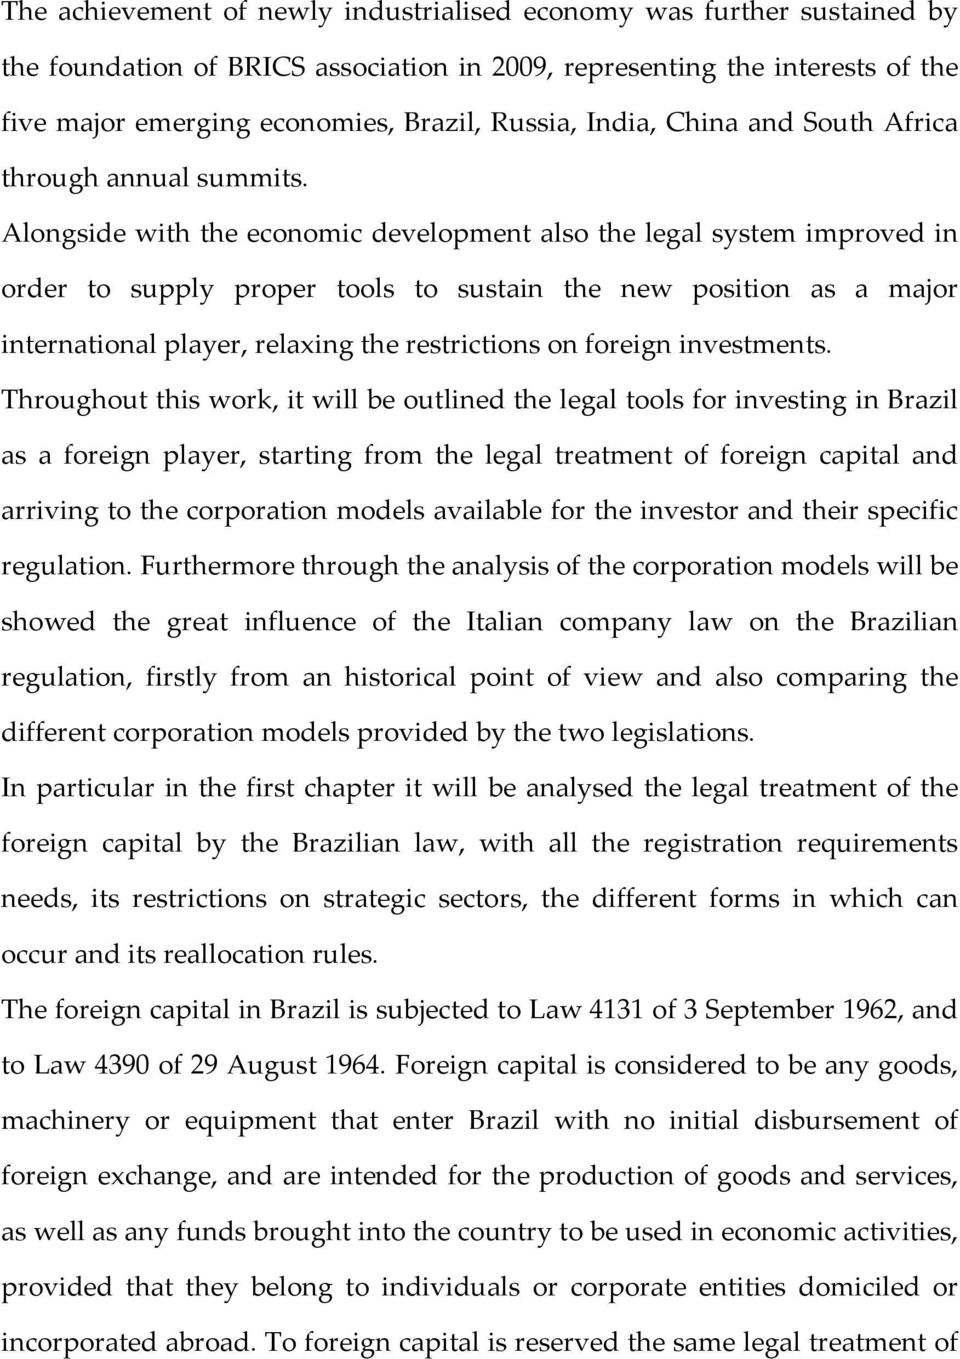 Alongside with the economic development also the legal system improved in order to supply proper tools to sustain the new position as a major international player, relaxing the restrictions on